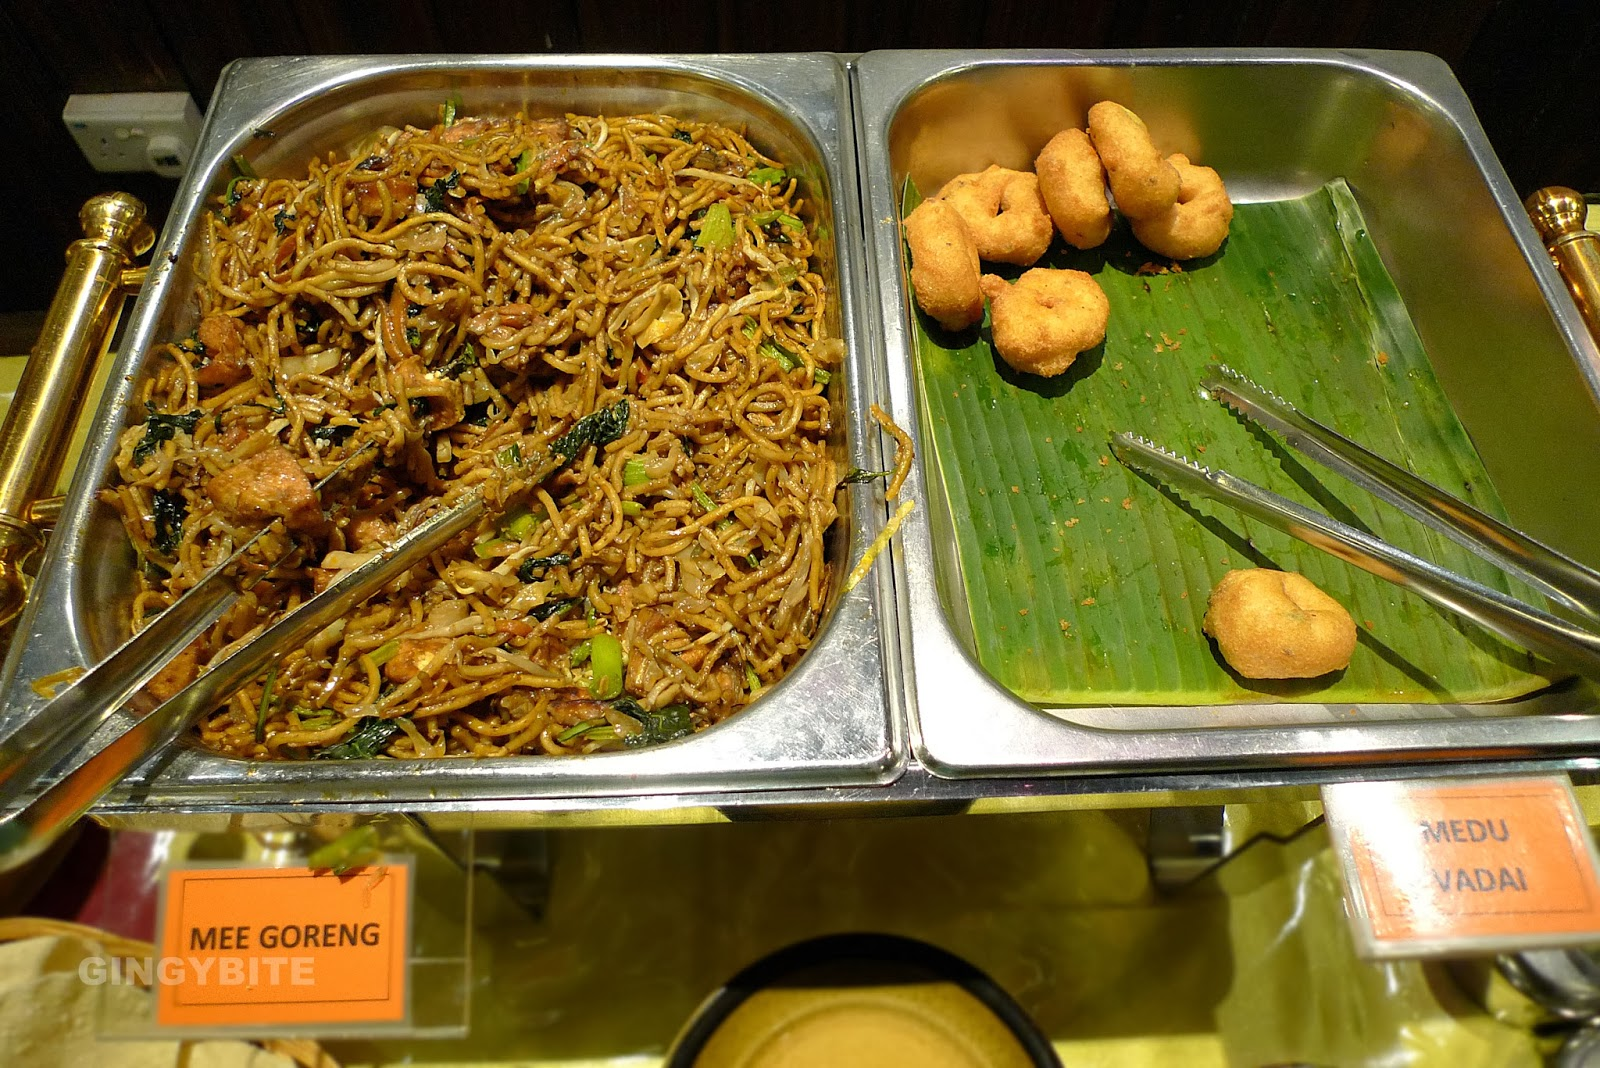 Mee goreng and Medu vadai